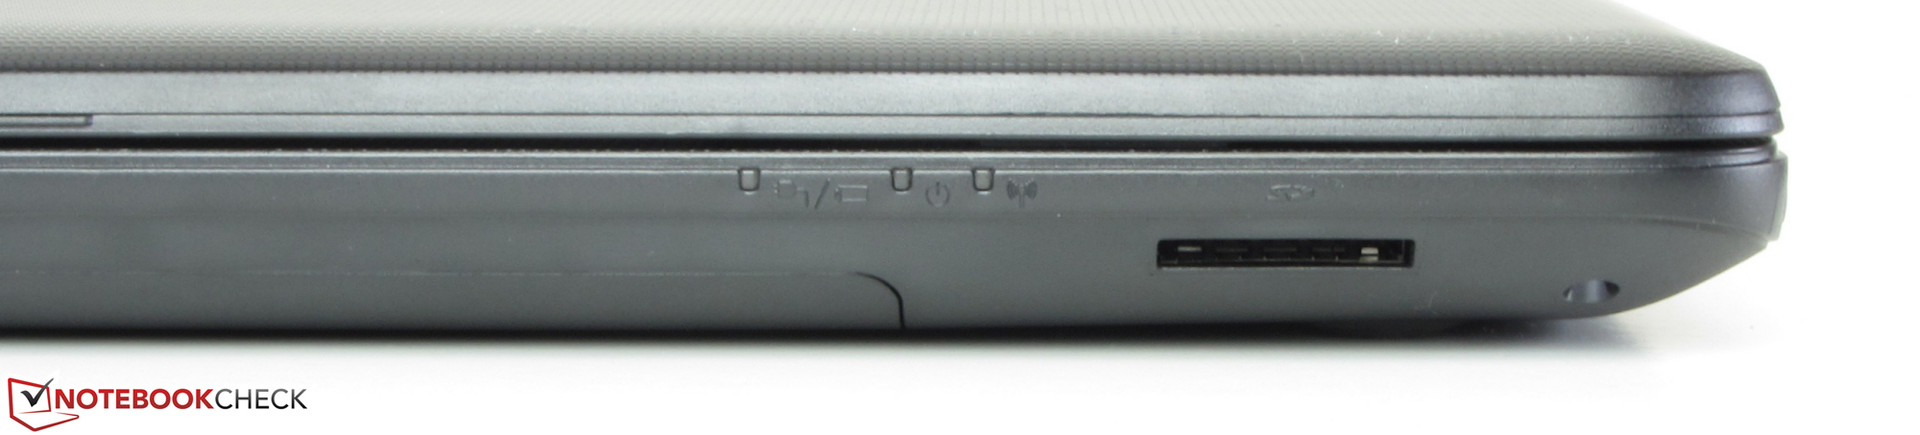 Review Toshiba Satellite C850-1LX Notebook - NotebookCheck